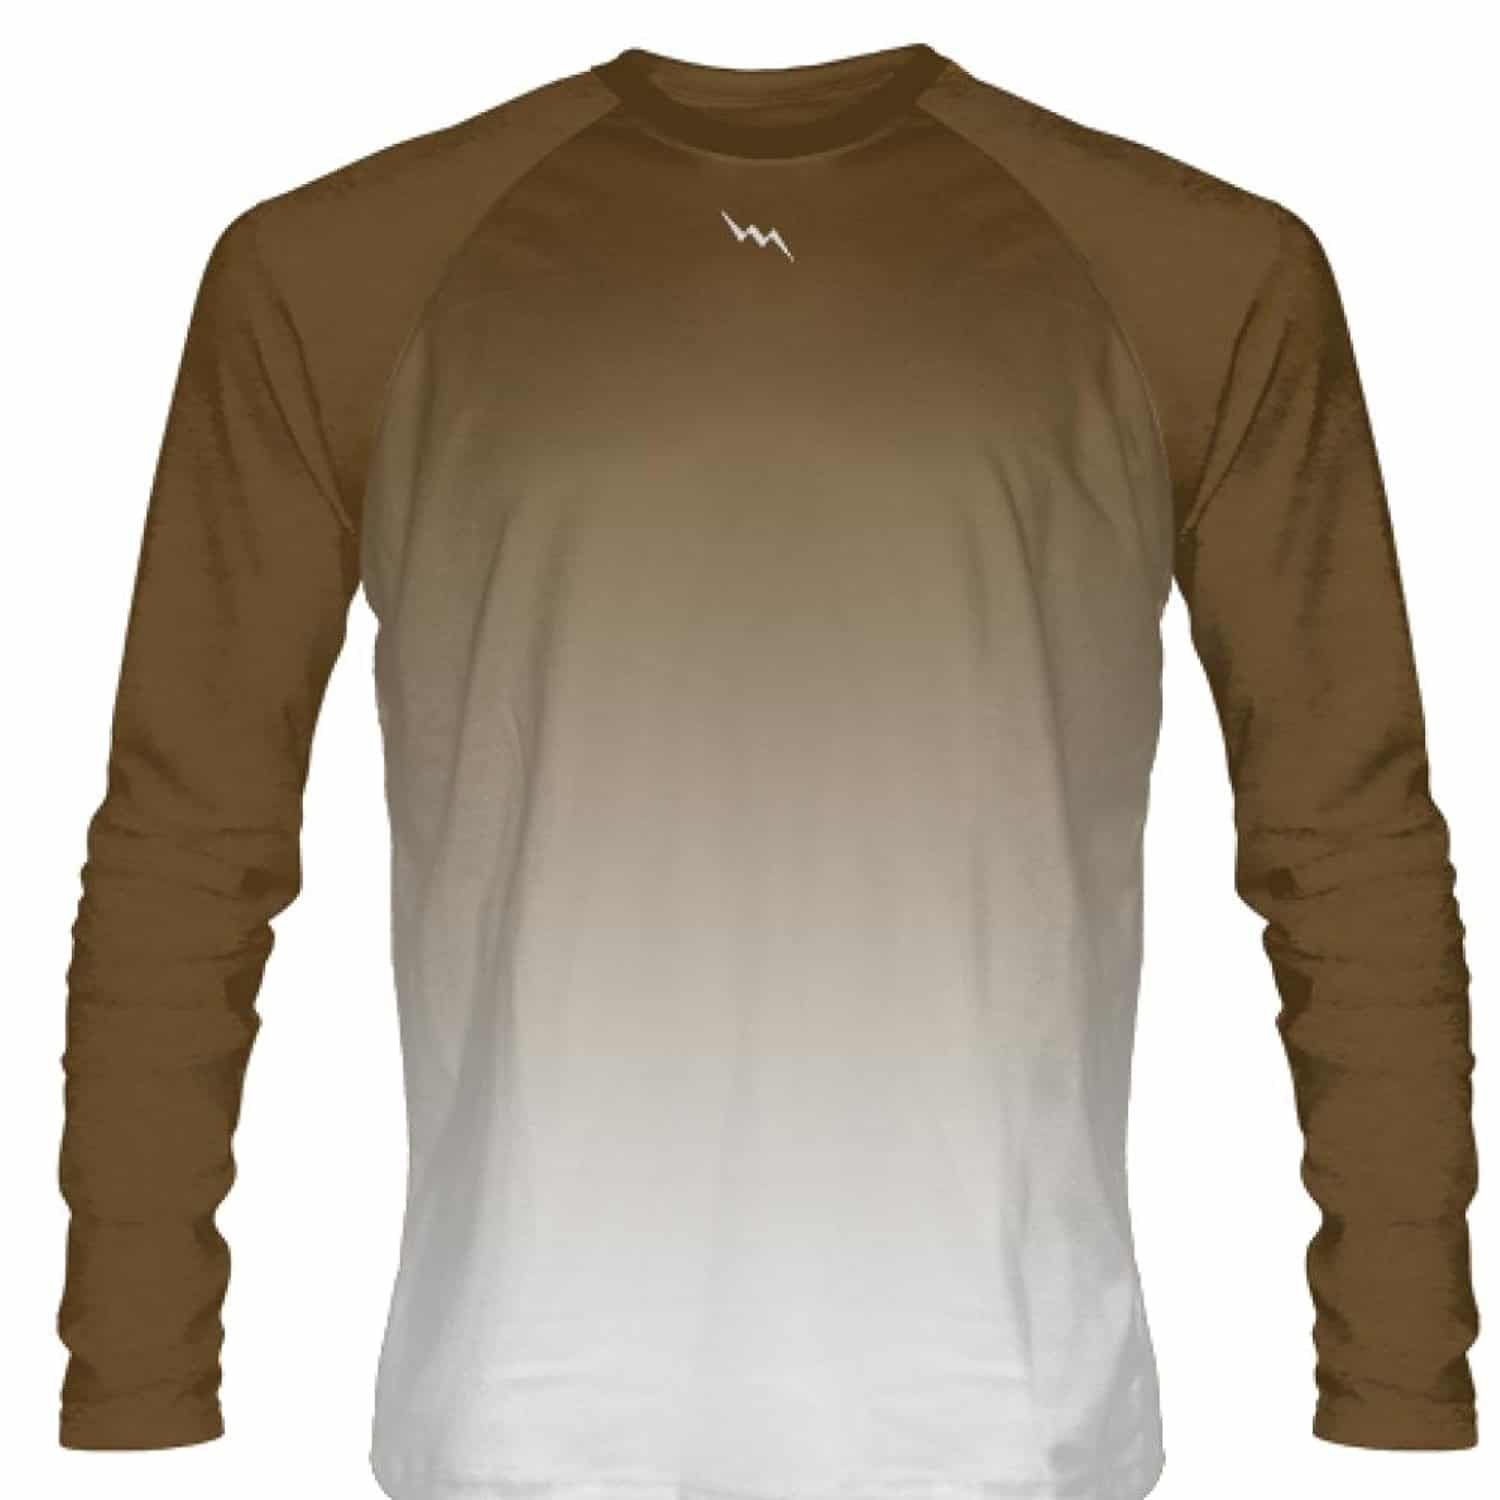 Variation-689408859740-of-Brown-Long-Sleeve-Lacrosse-Shirts-8211-Ombre-Athletic-Shooter-Shirts-8211-Basketball-Sho-B078PWP782-258352